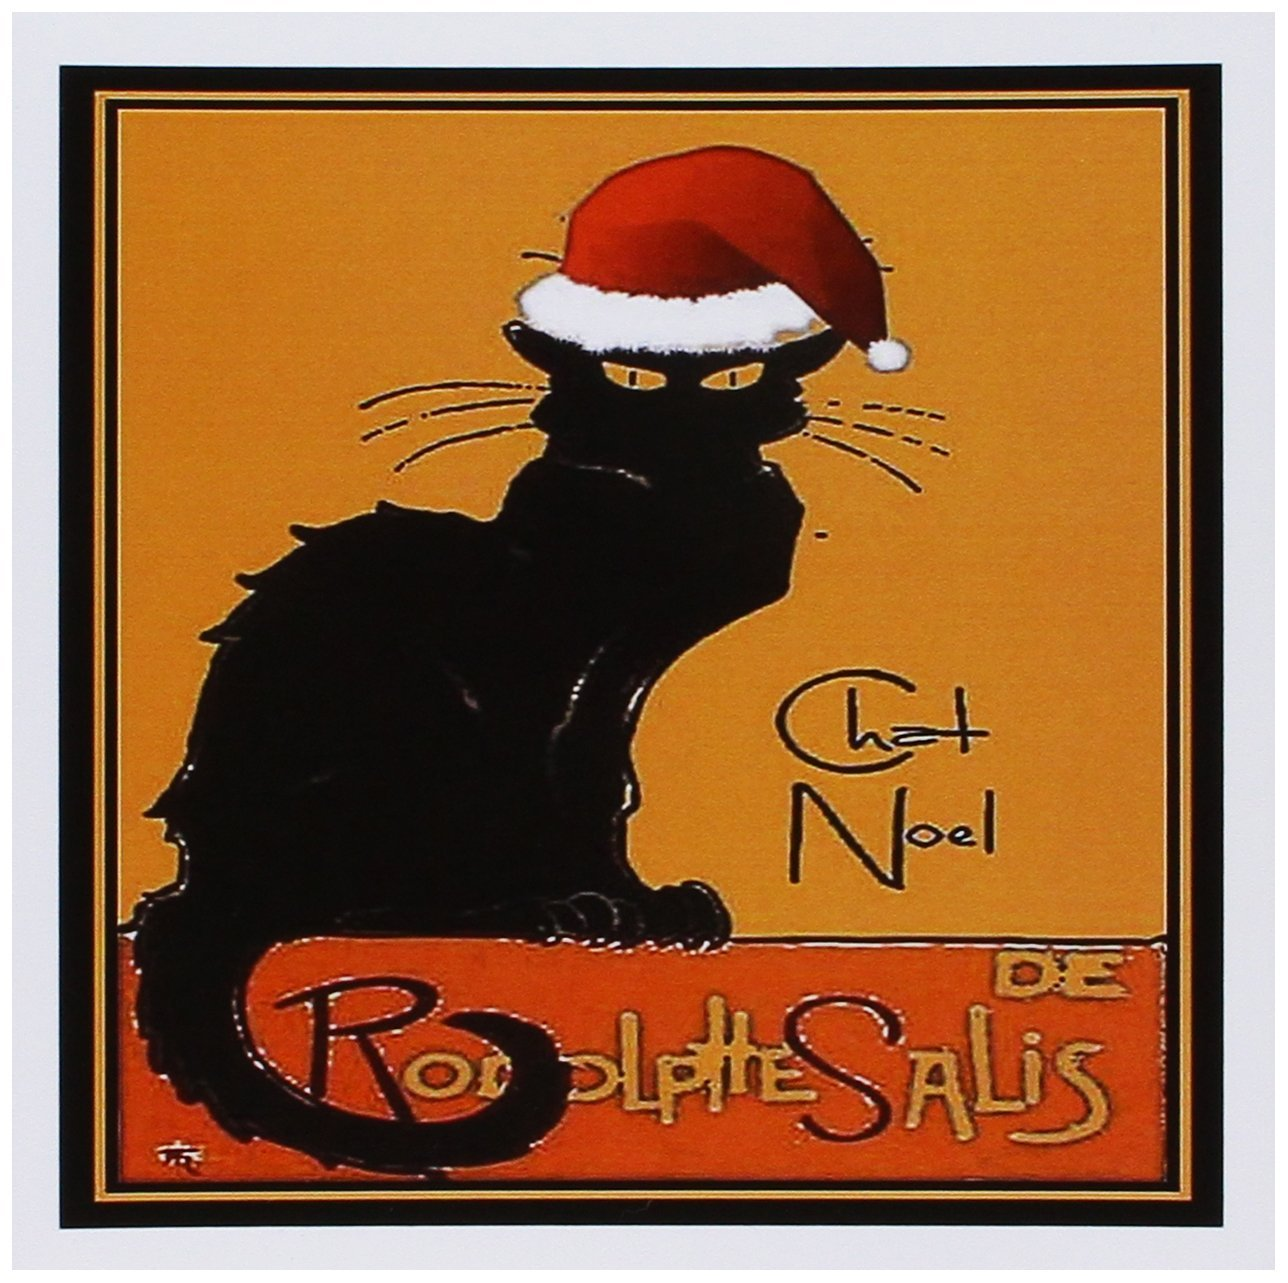 3dRose Le Chat Noel - advertising, art nouveau, black cat, cat, cats, chat noir, le chat - Greeting Cards, 6 x 6 inches, set of 12 (gc_47077_2)